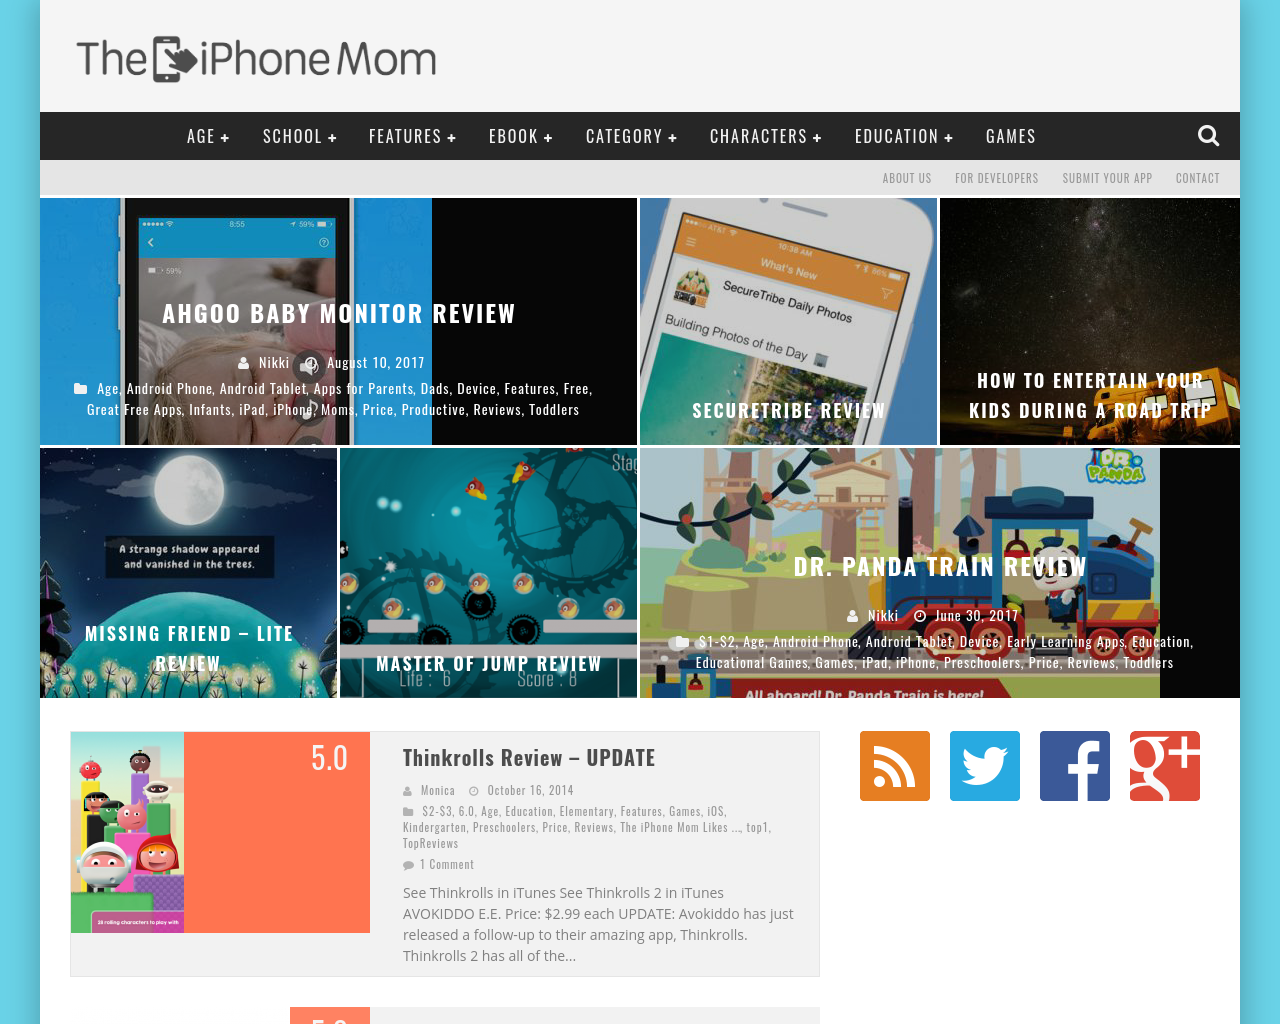 The-iPhone-Mom-Advertising-Reviews-Pricing